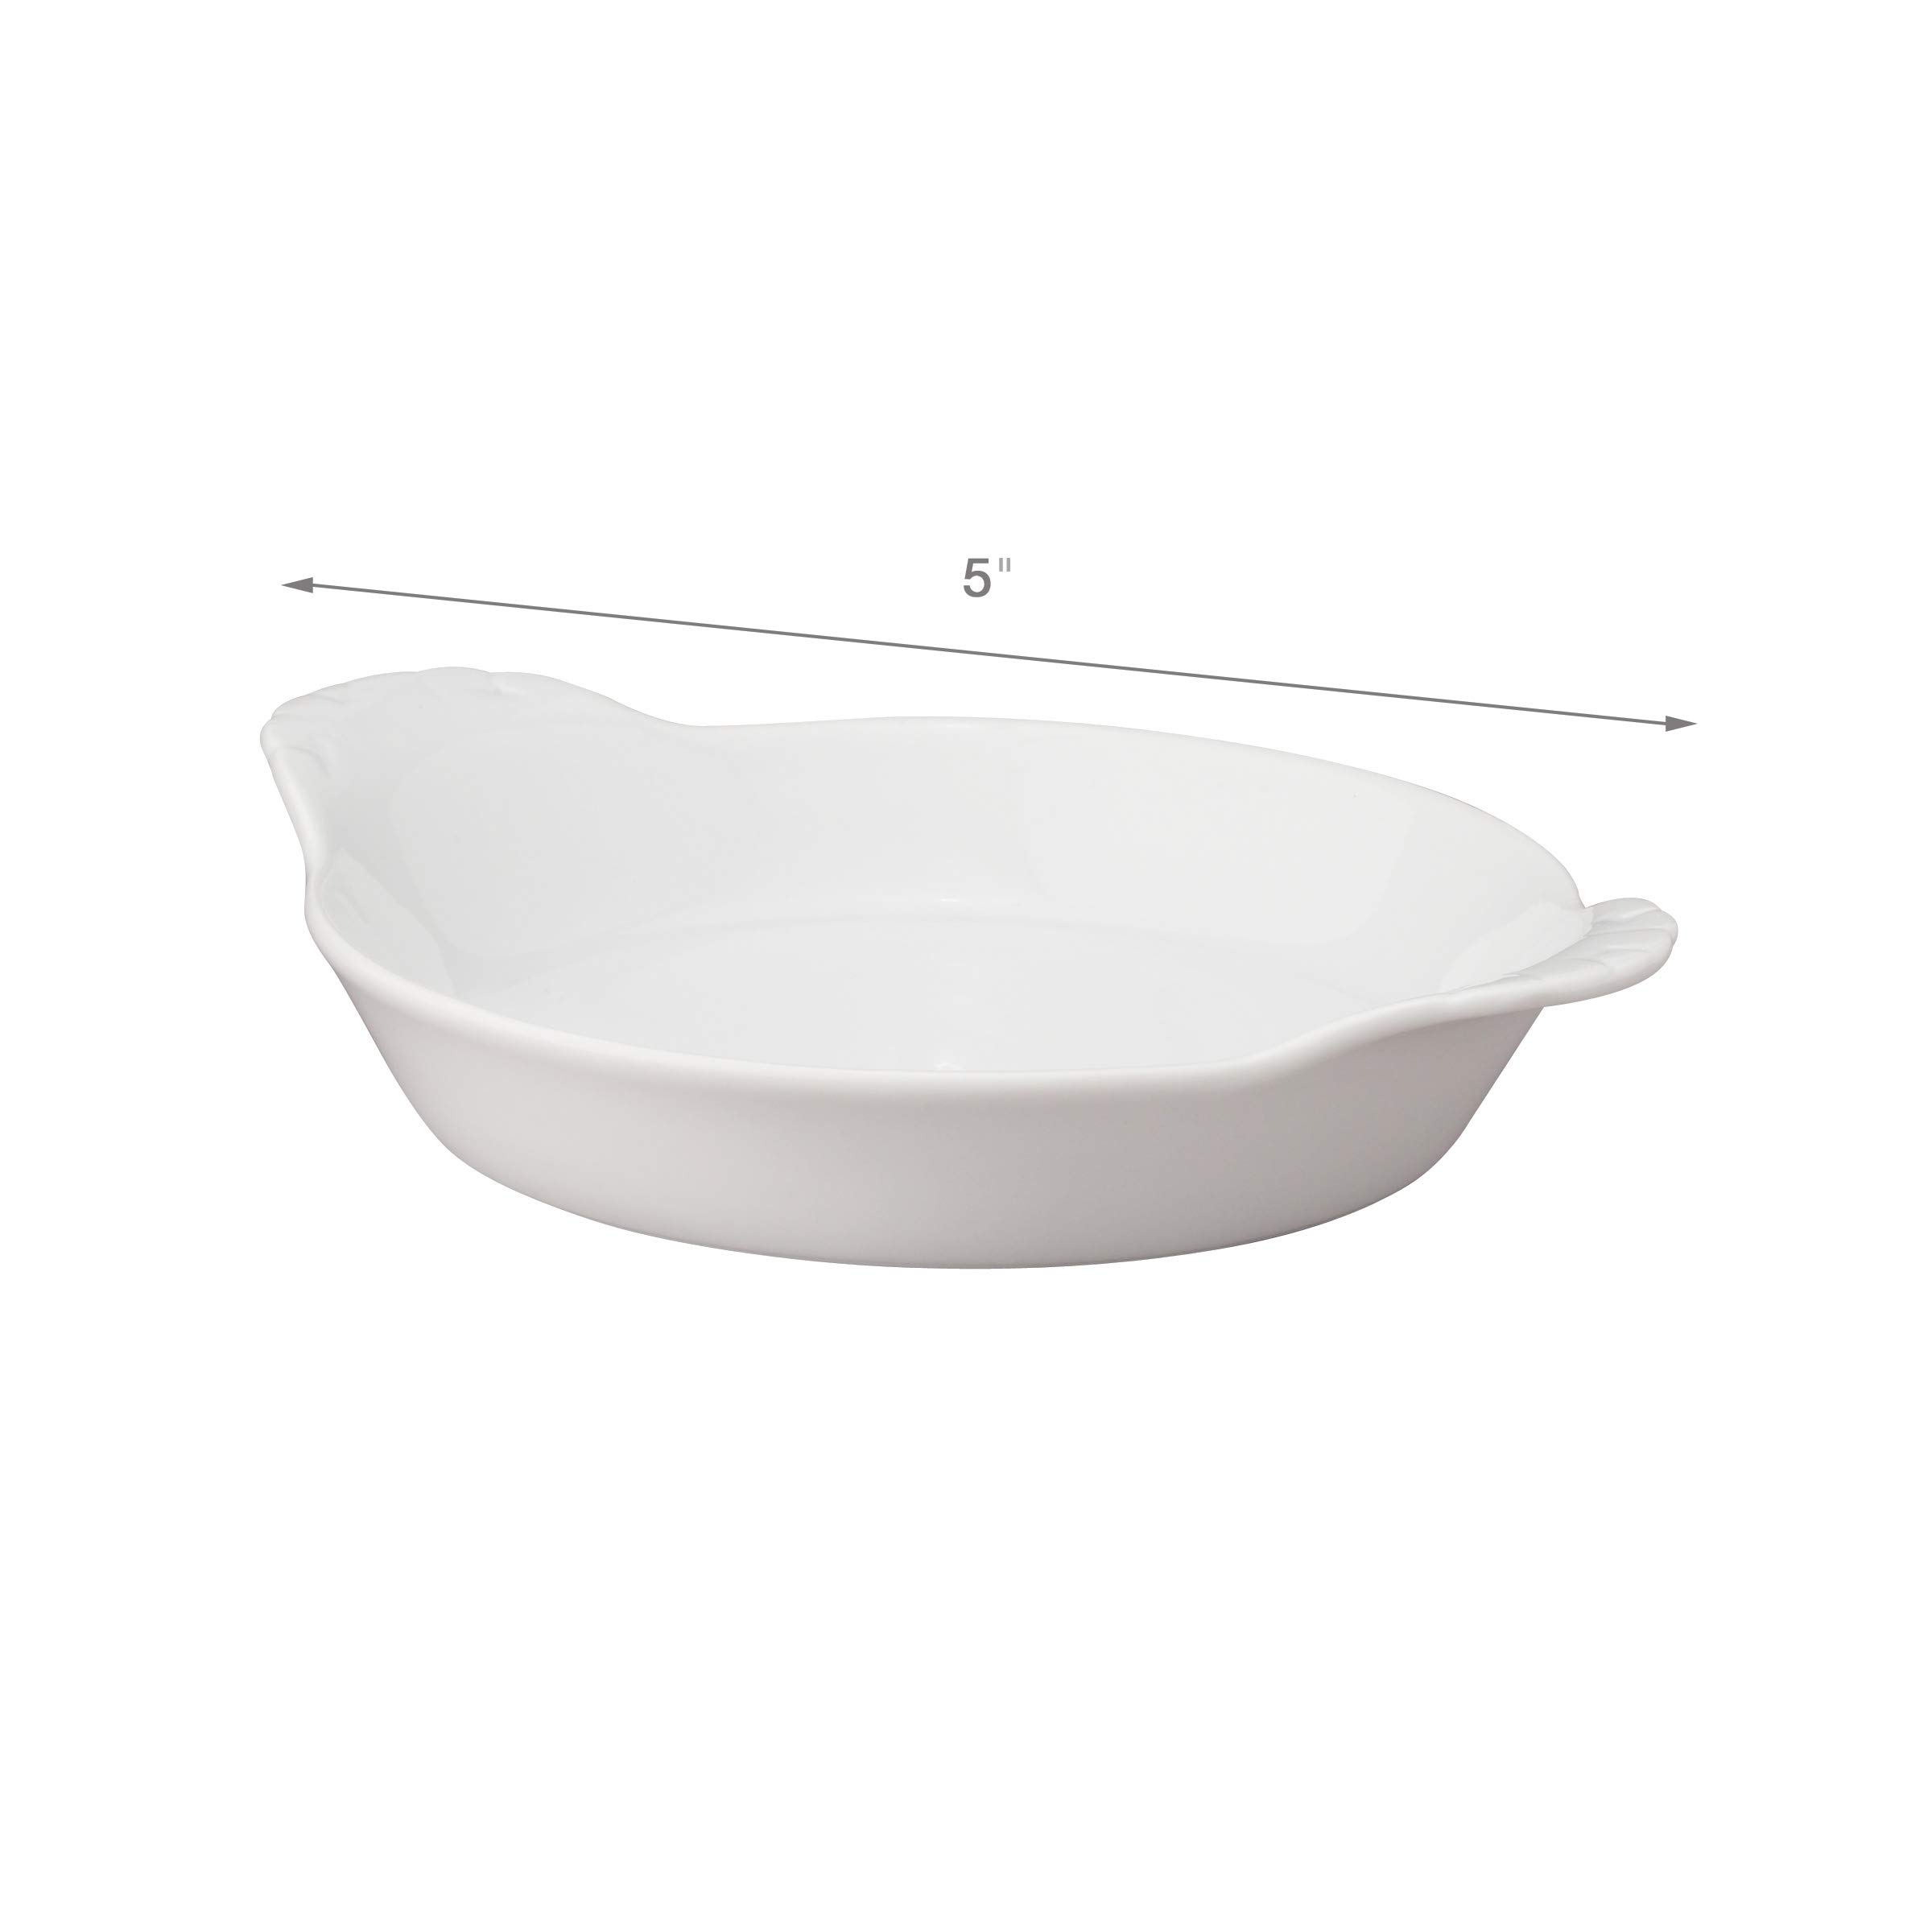 HIC Round Au Gratin Baking Dishes, Porcelain, 4-Ounce, 5-Inch, Set of 6 by HIC Harold Import Co. (Image #4)